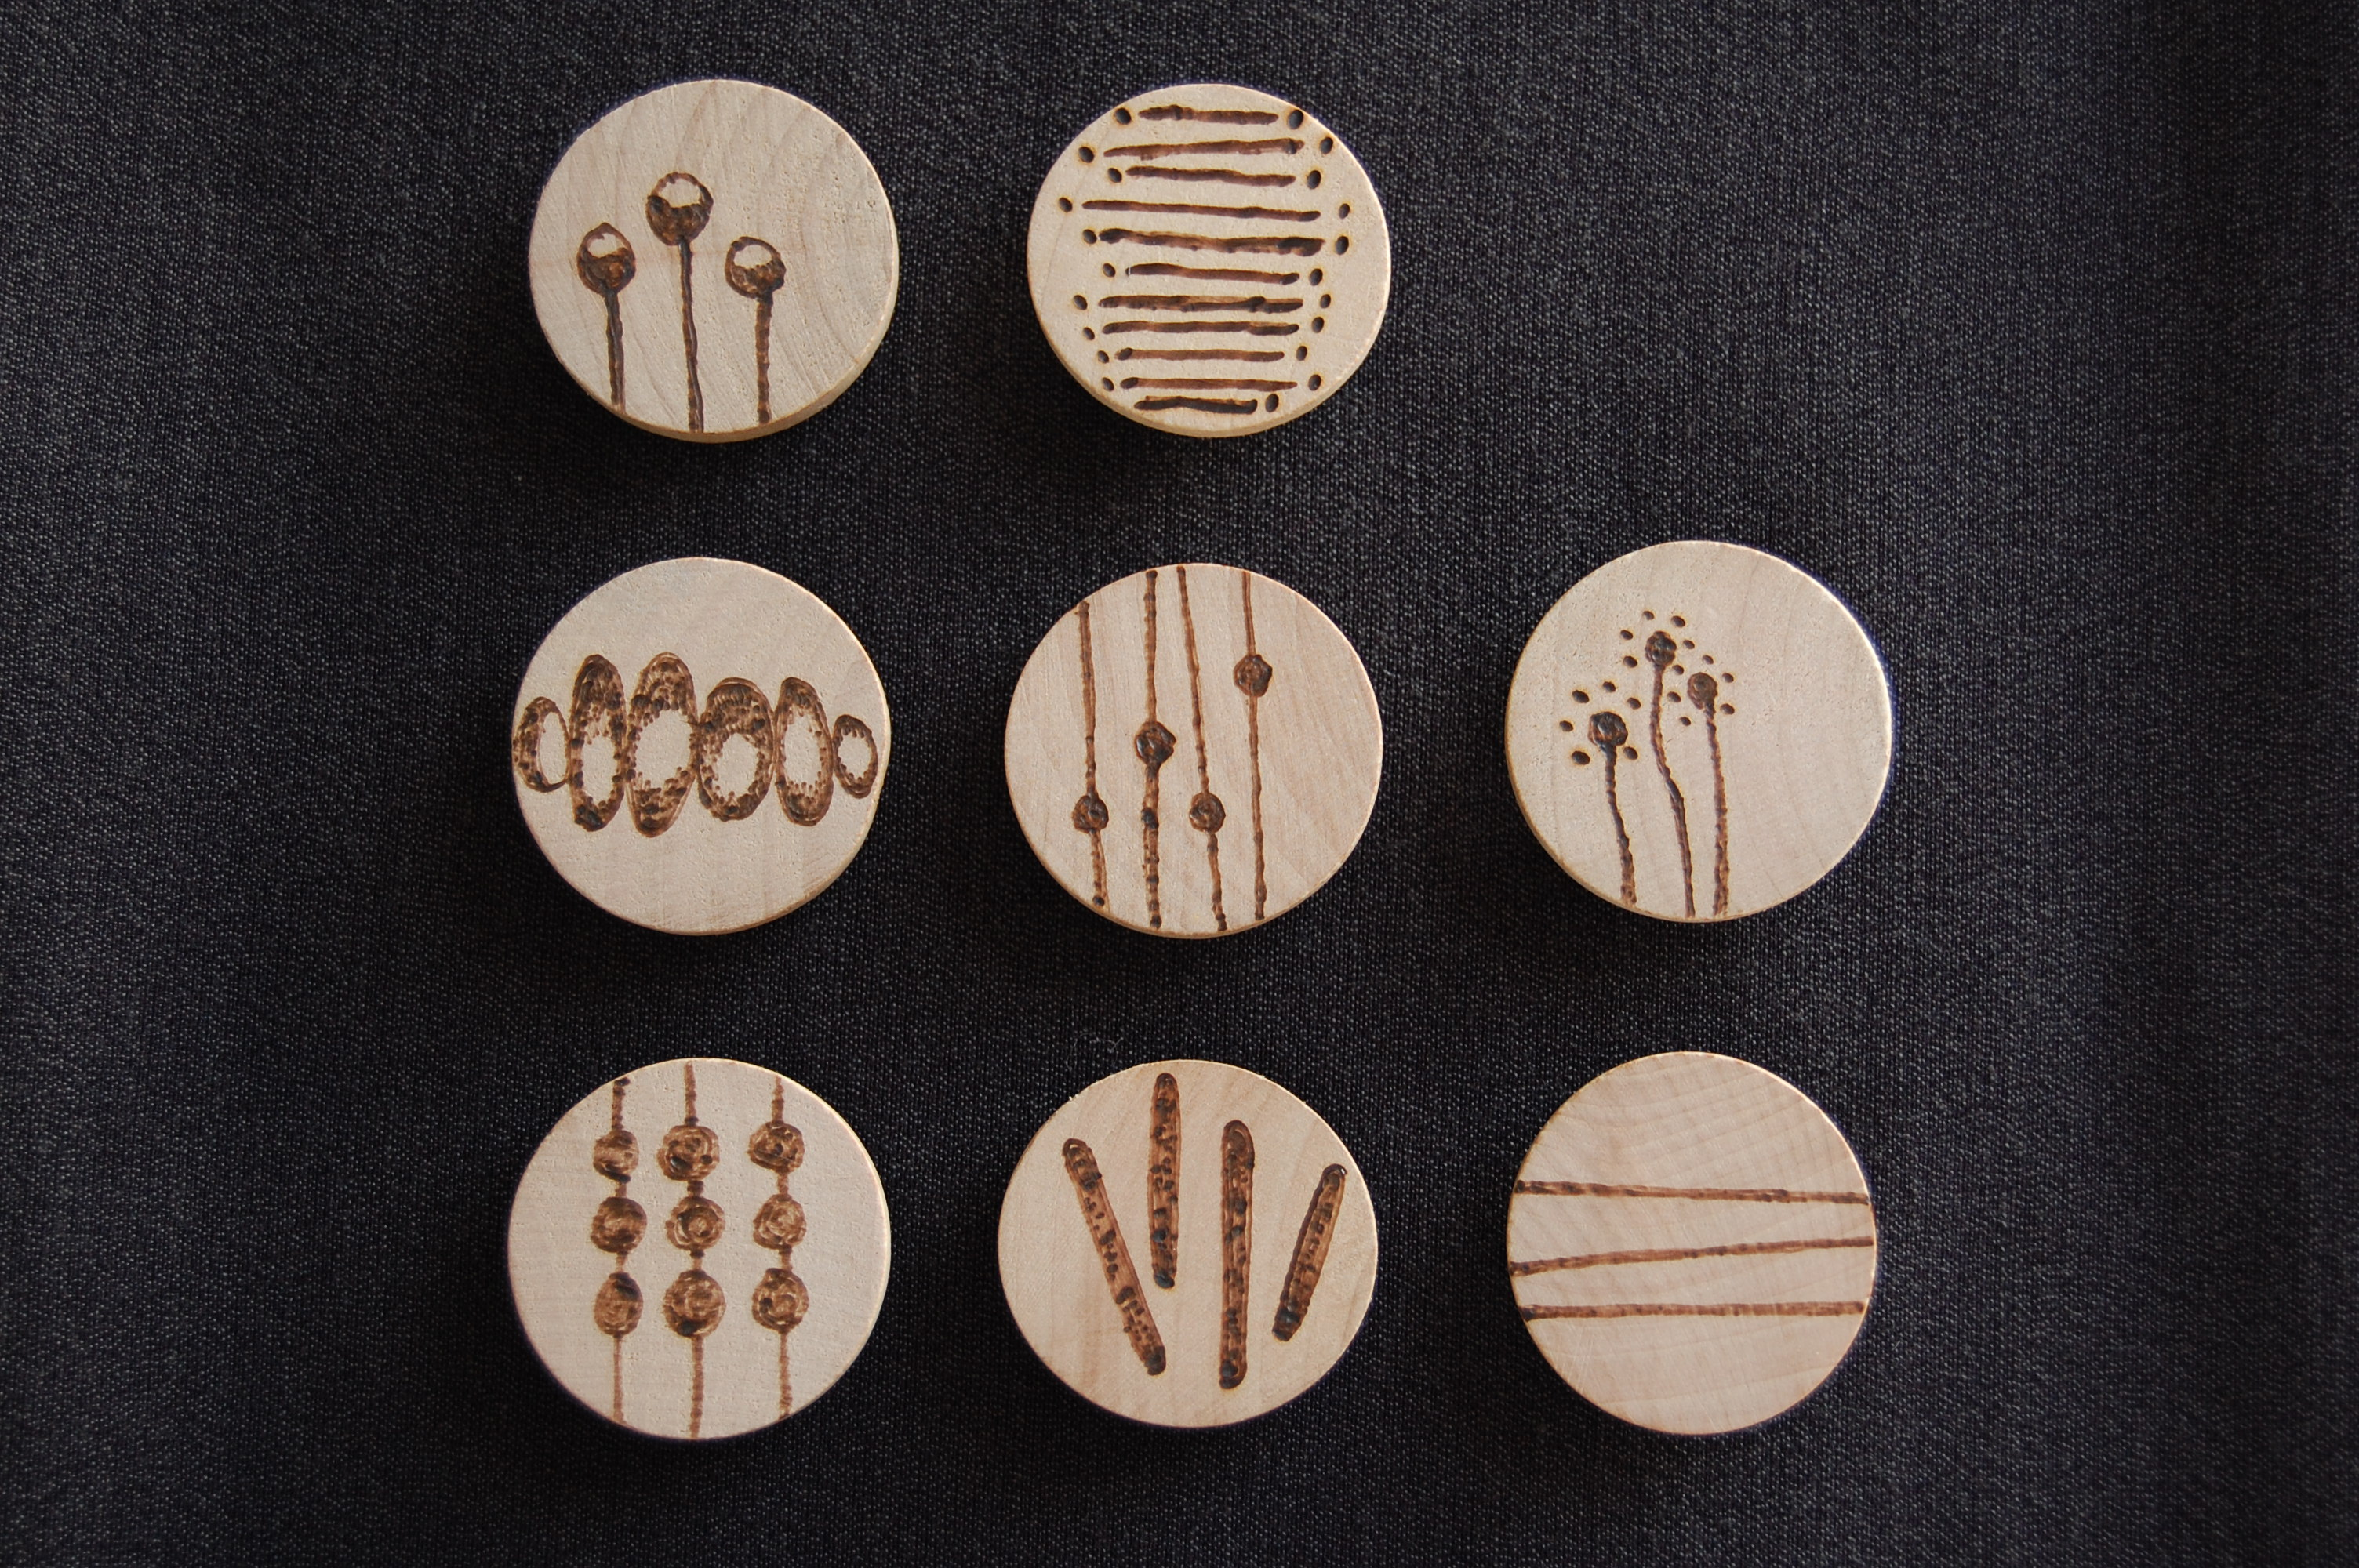 Details About Wood Circles Round Disc Unfinished Wood Cutouts Ornament Craft Project Coins